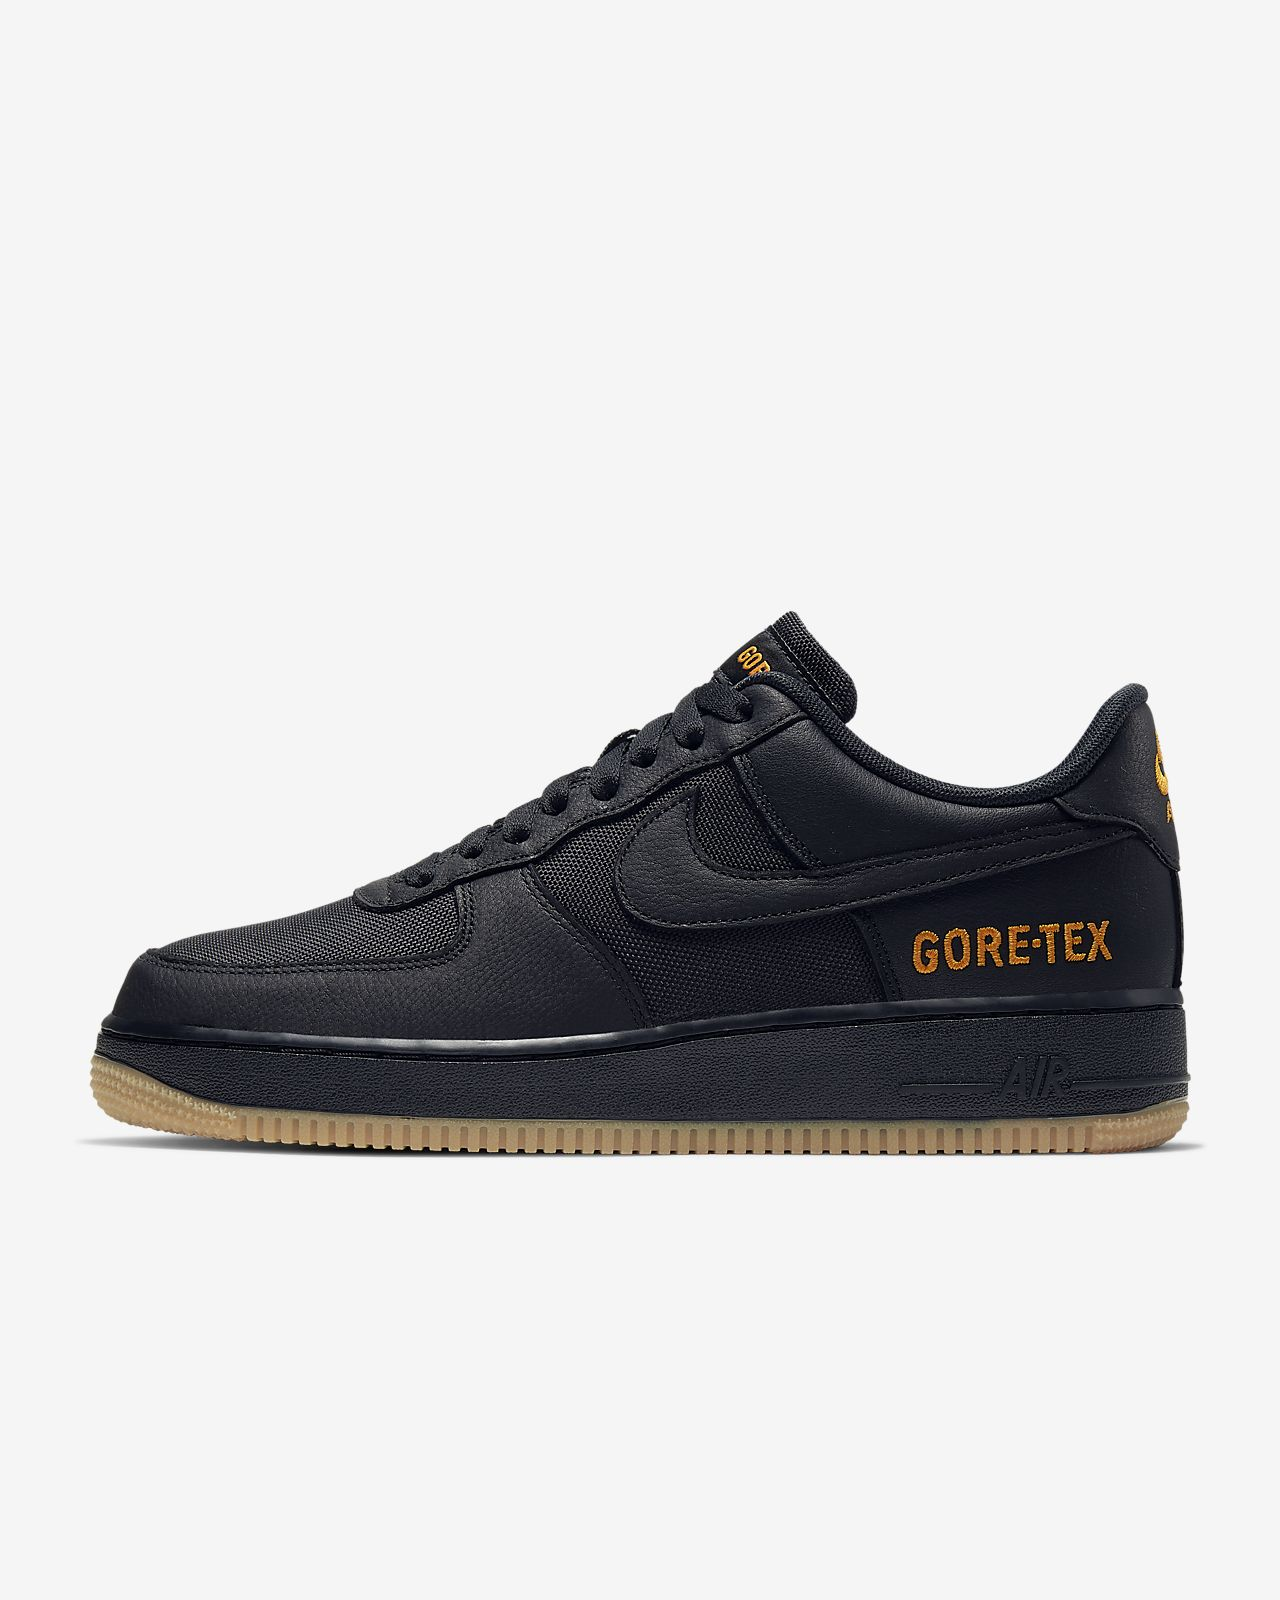 Nike Air Force 1 GORE TEX Shoe